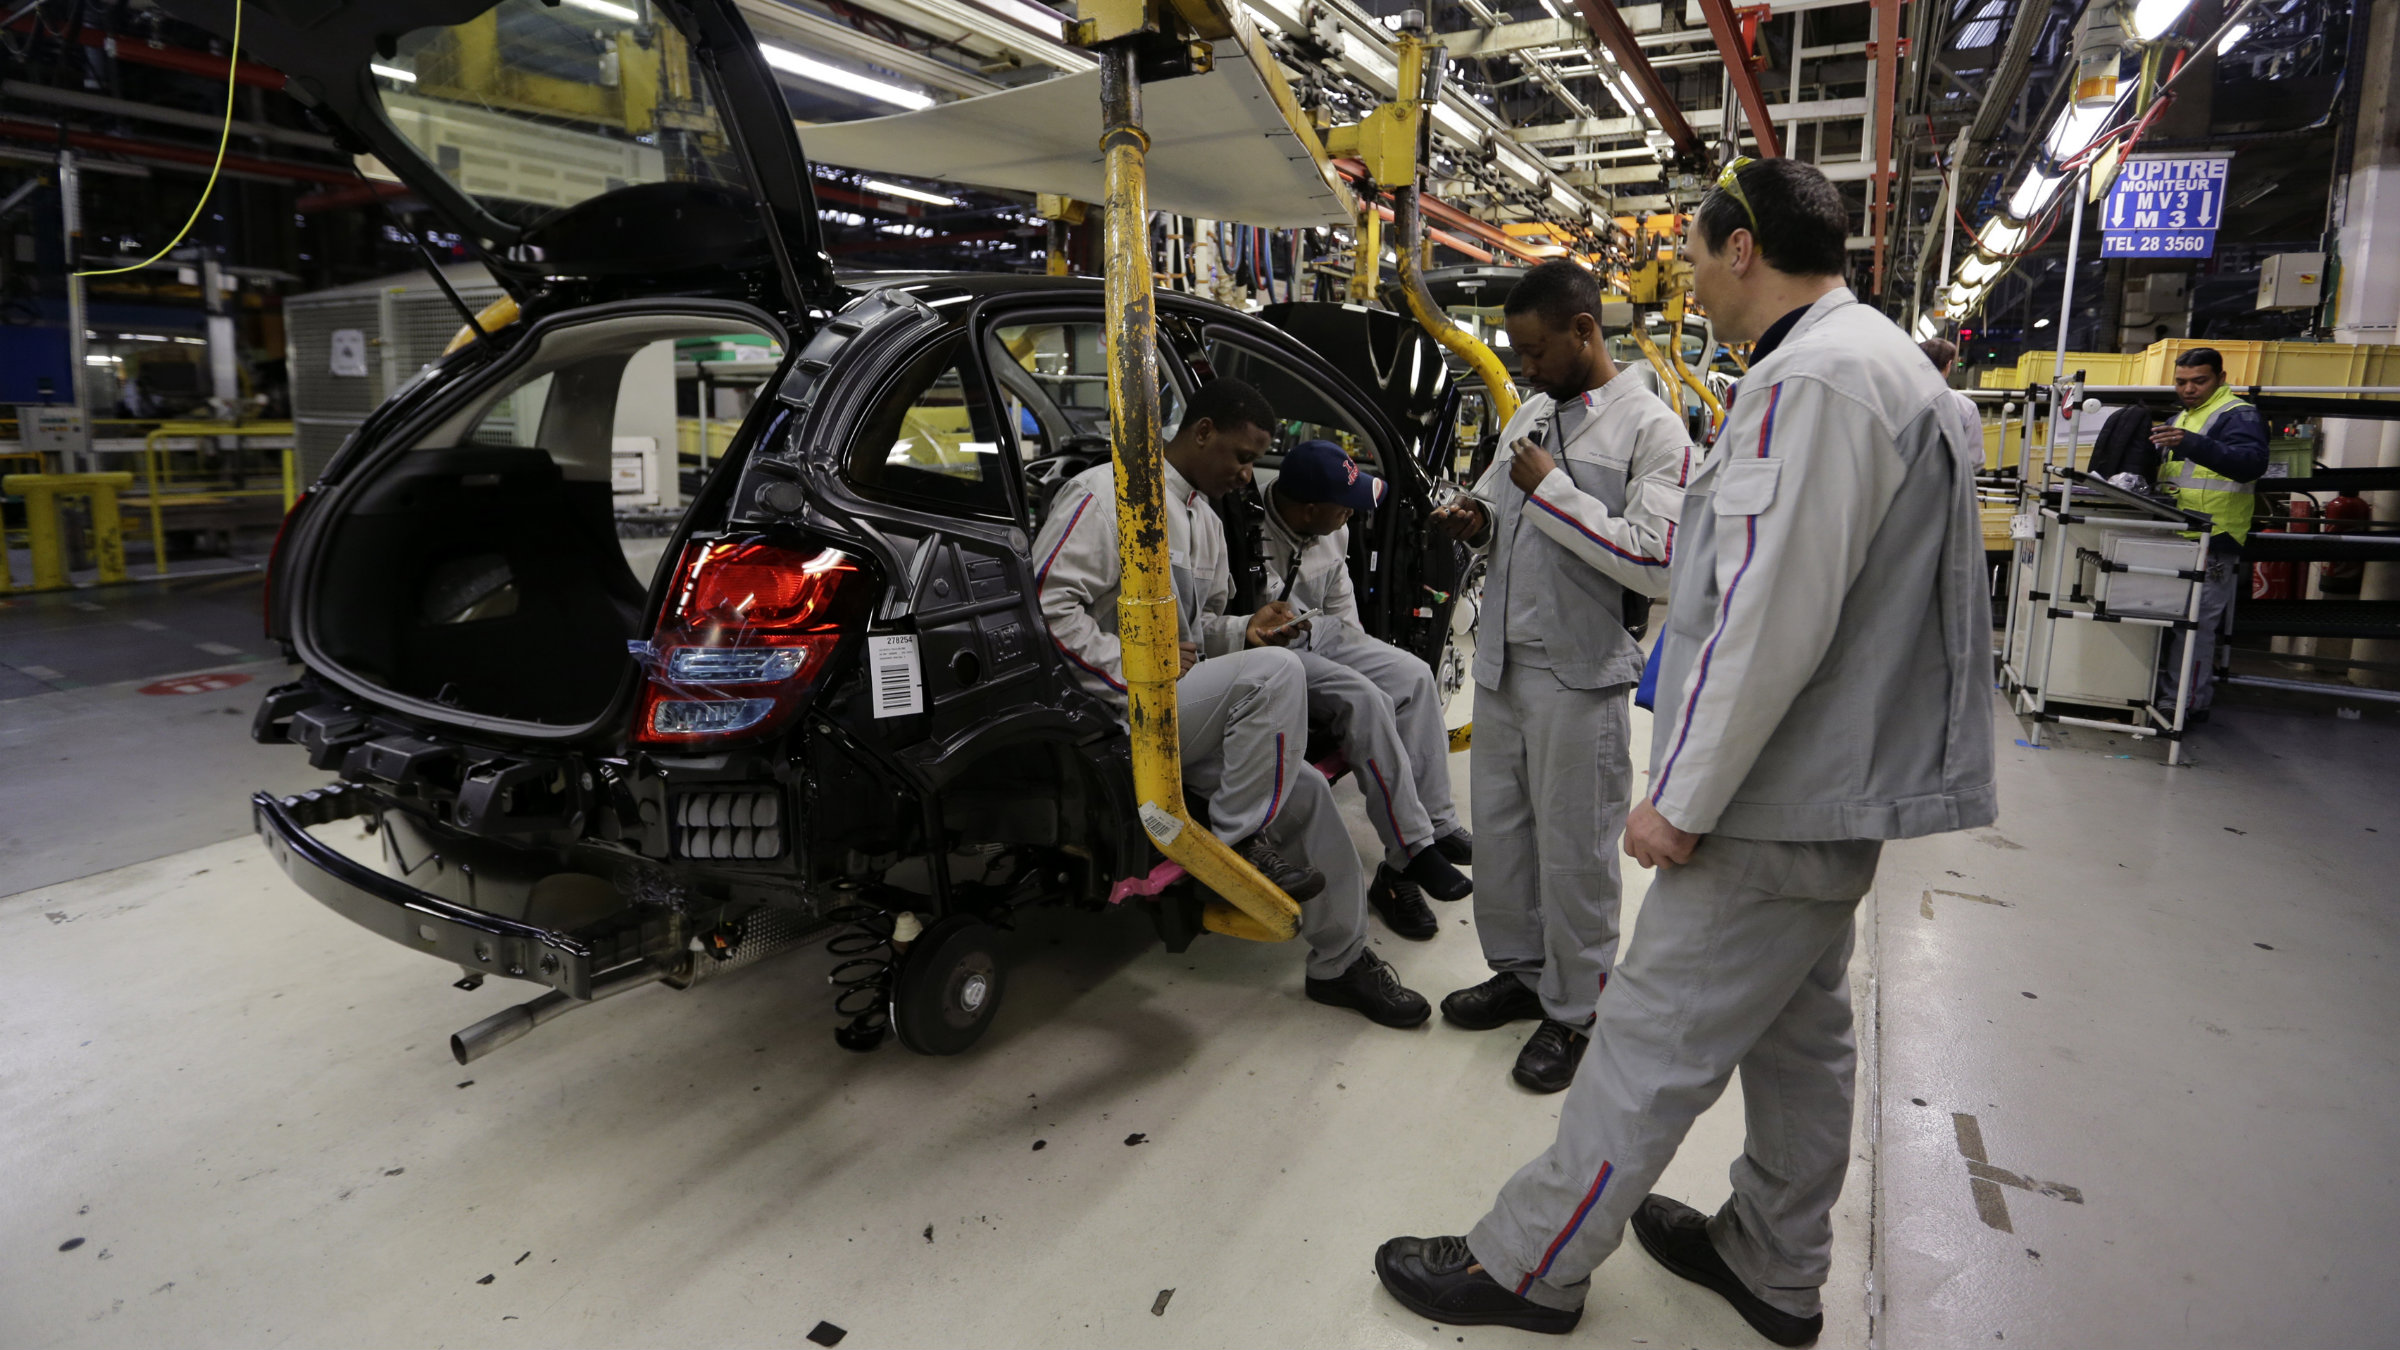 Workers gather around an unfinished automobile on the assembly line at the PSA-Peugeot Citroen plant in Aulnay-sous-Bois, near Paris.